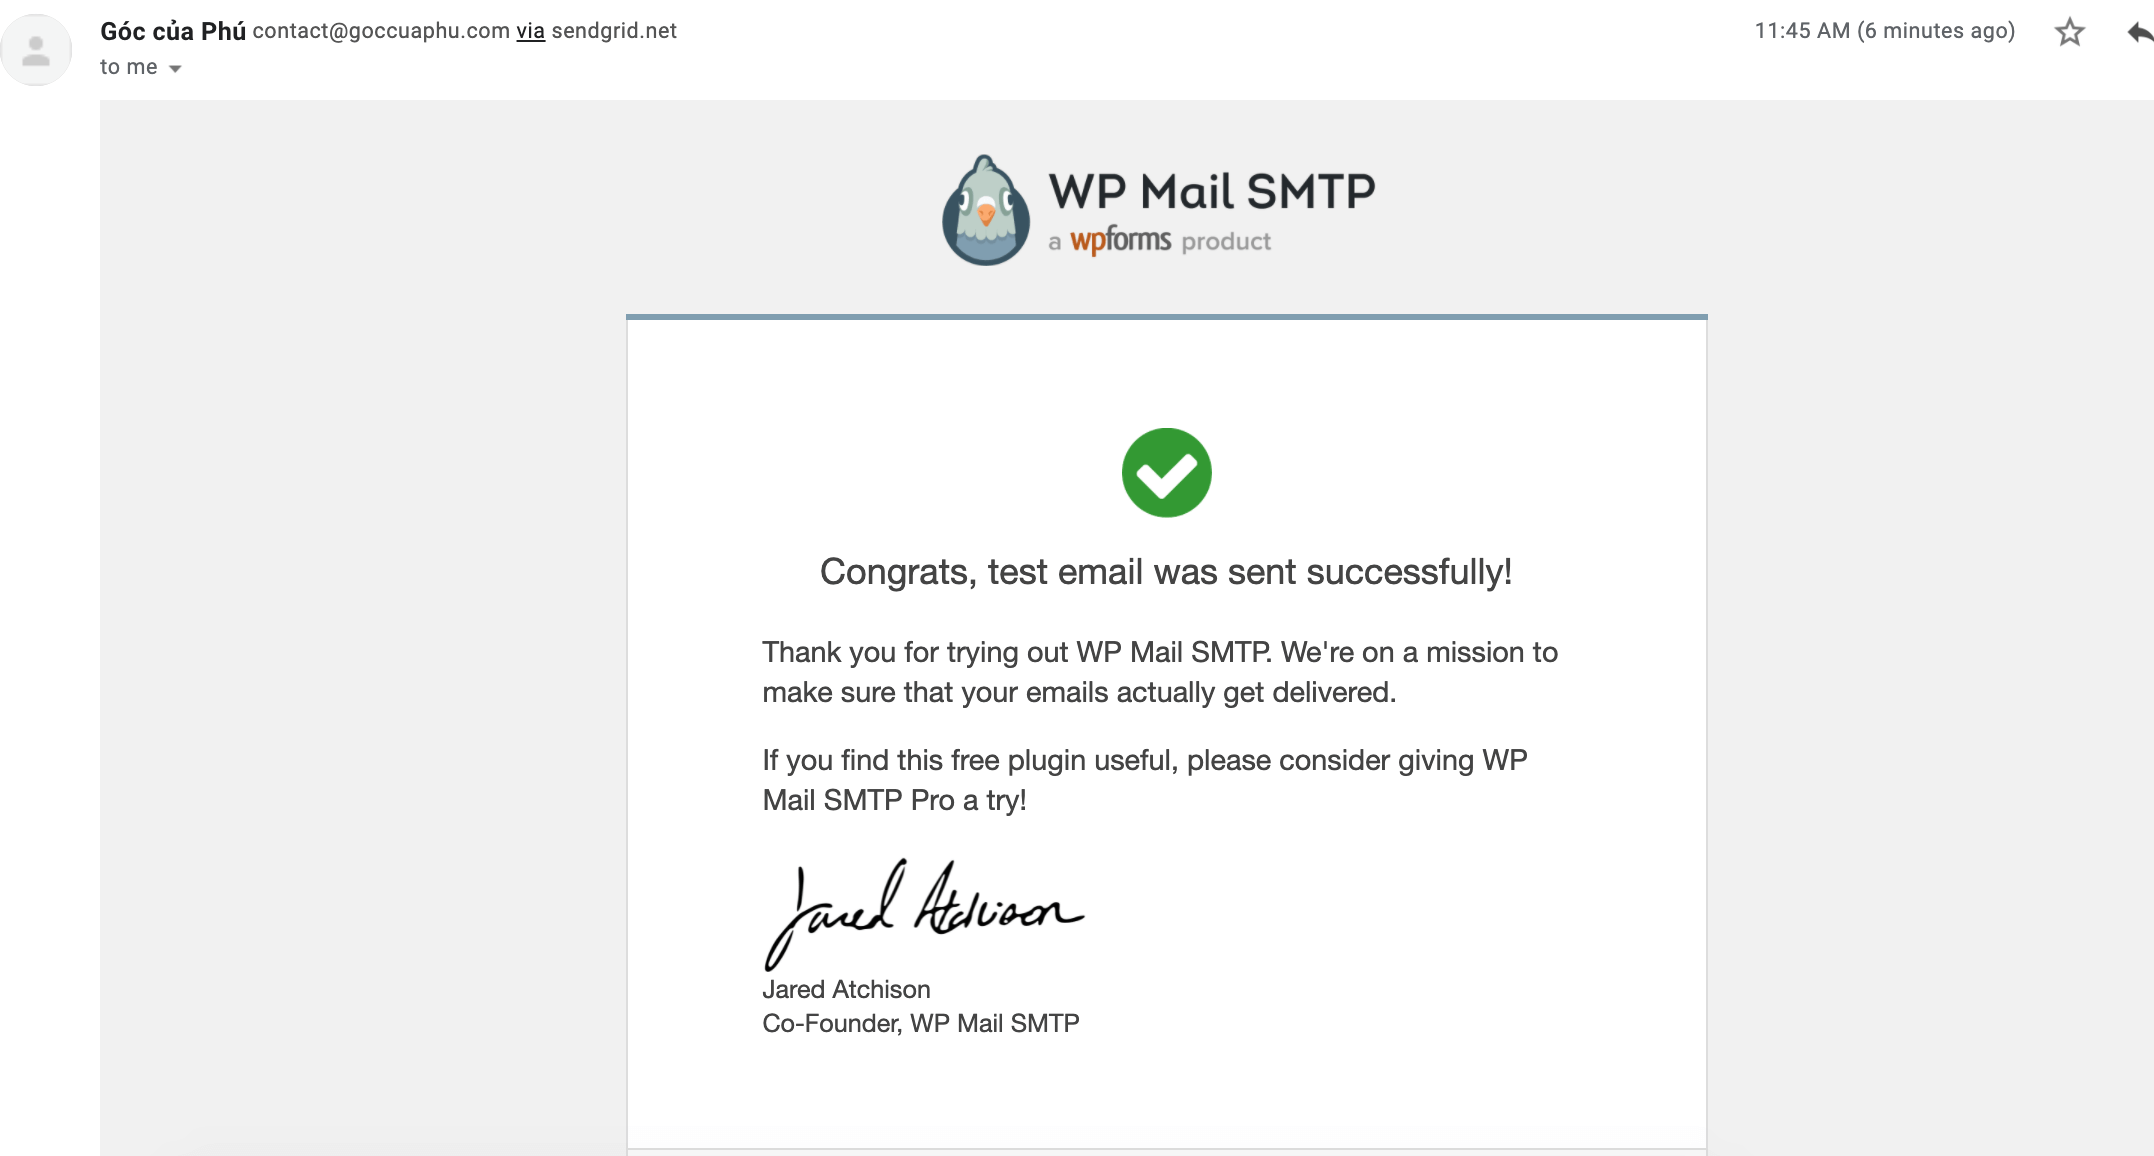 check email test của WP Mail SMTP